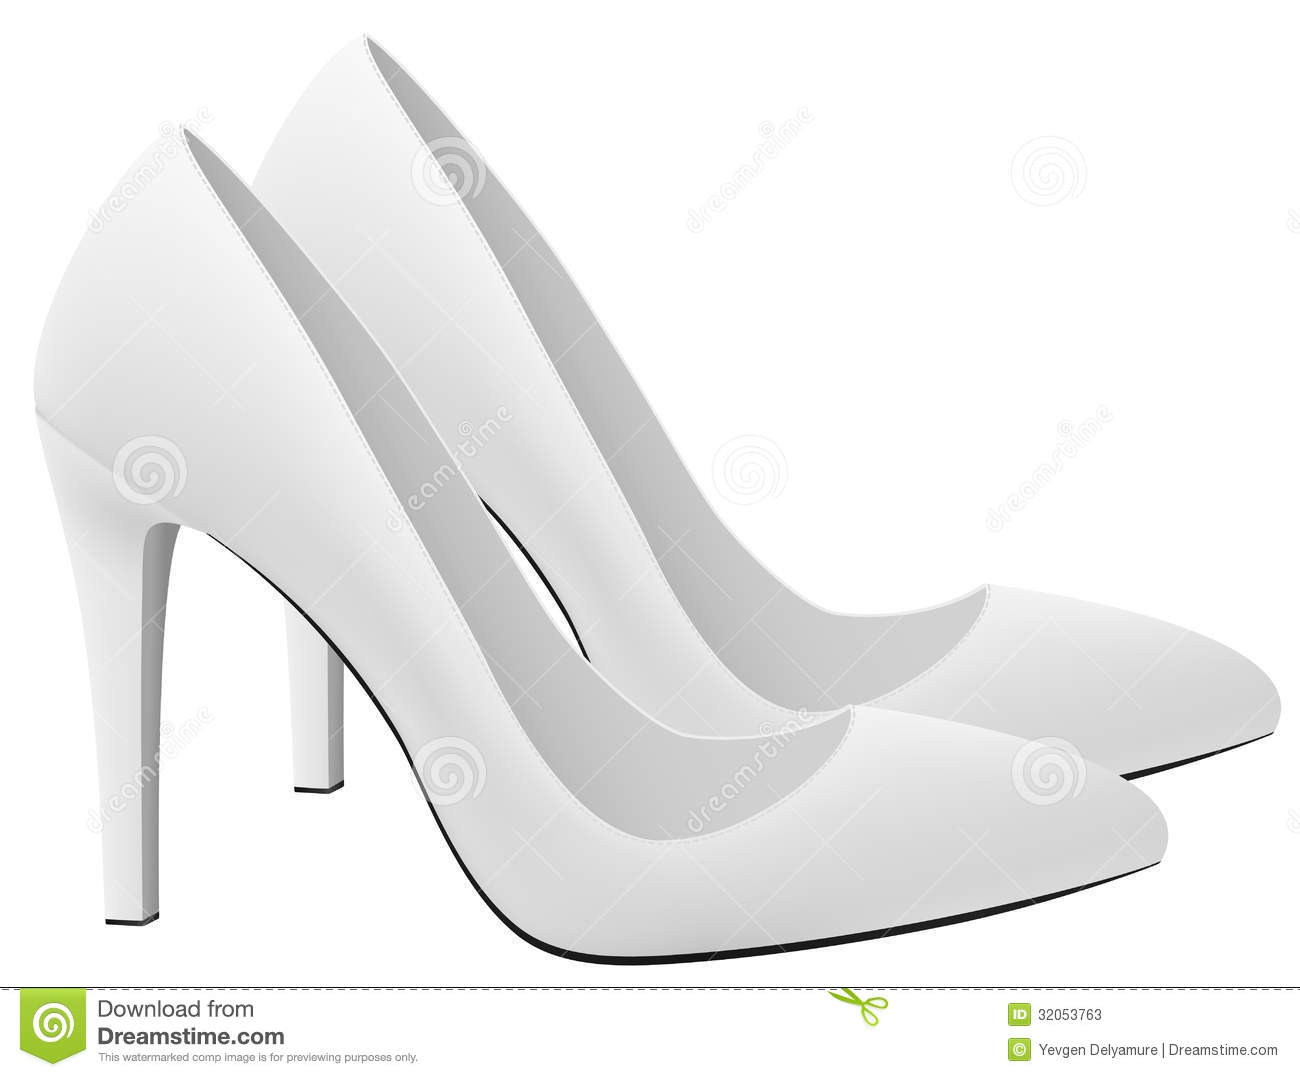 Classic blank high heels shoes template stock photos for High heel shoe design template